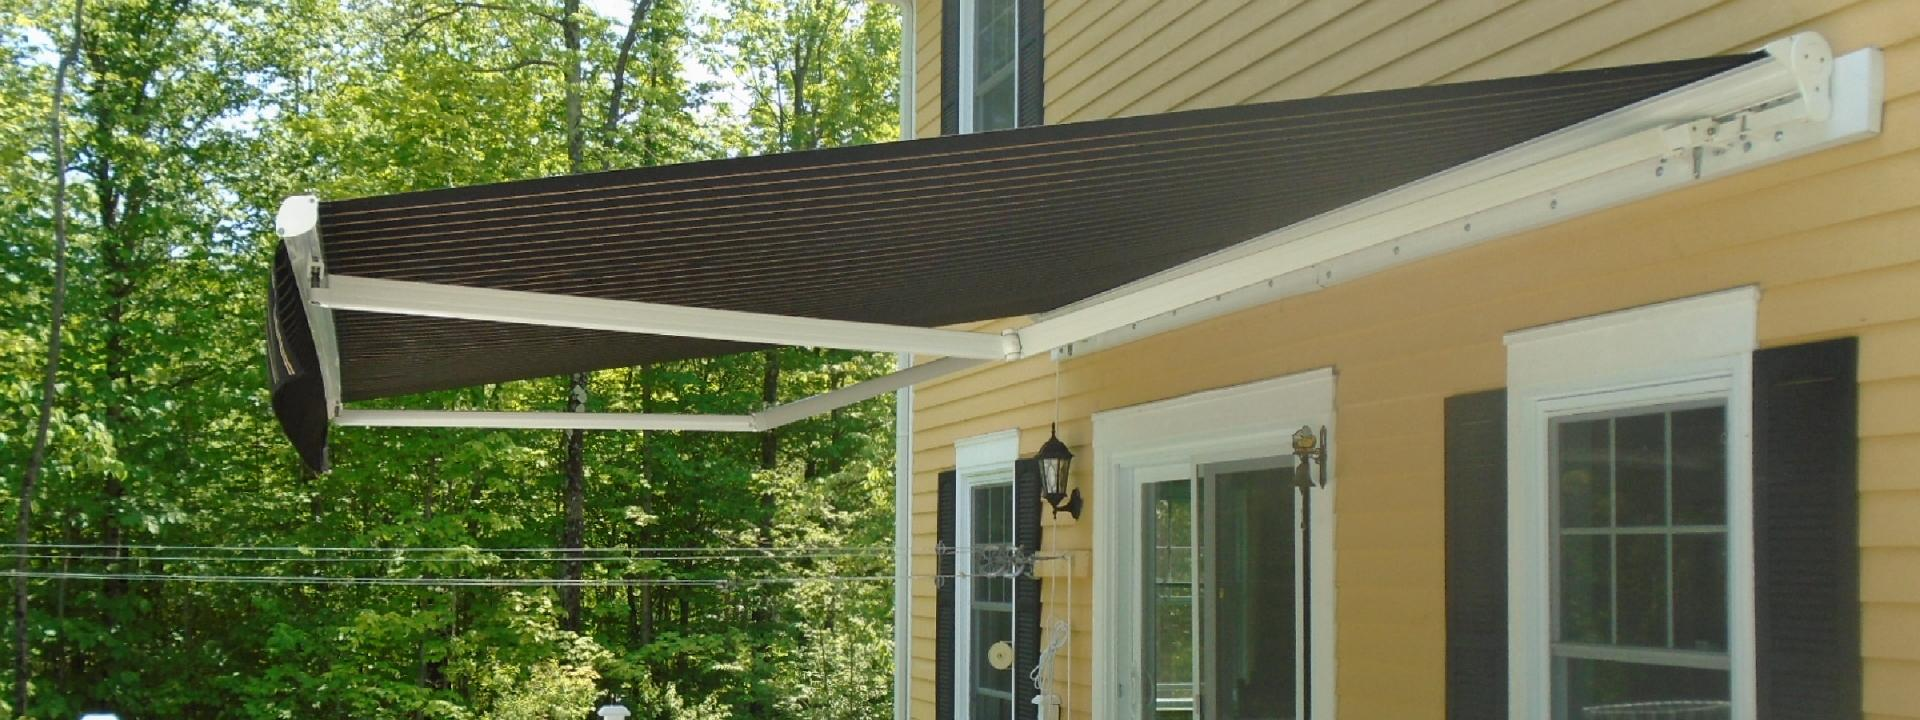 Retractable Canvas Awnings - Longueuil, Montreal, Rive-Sud   Canevas